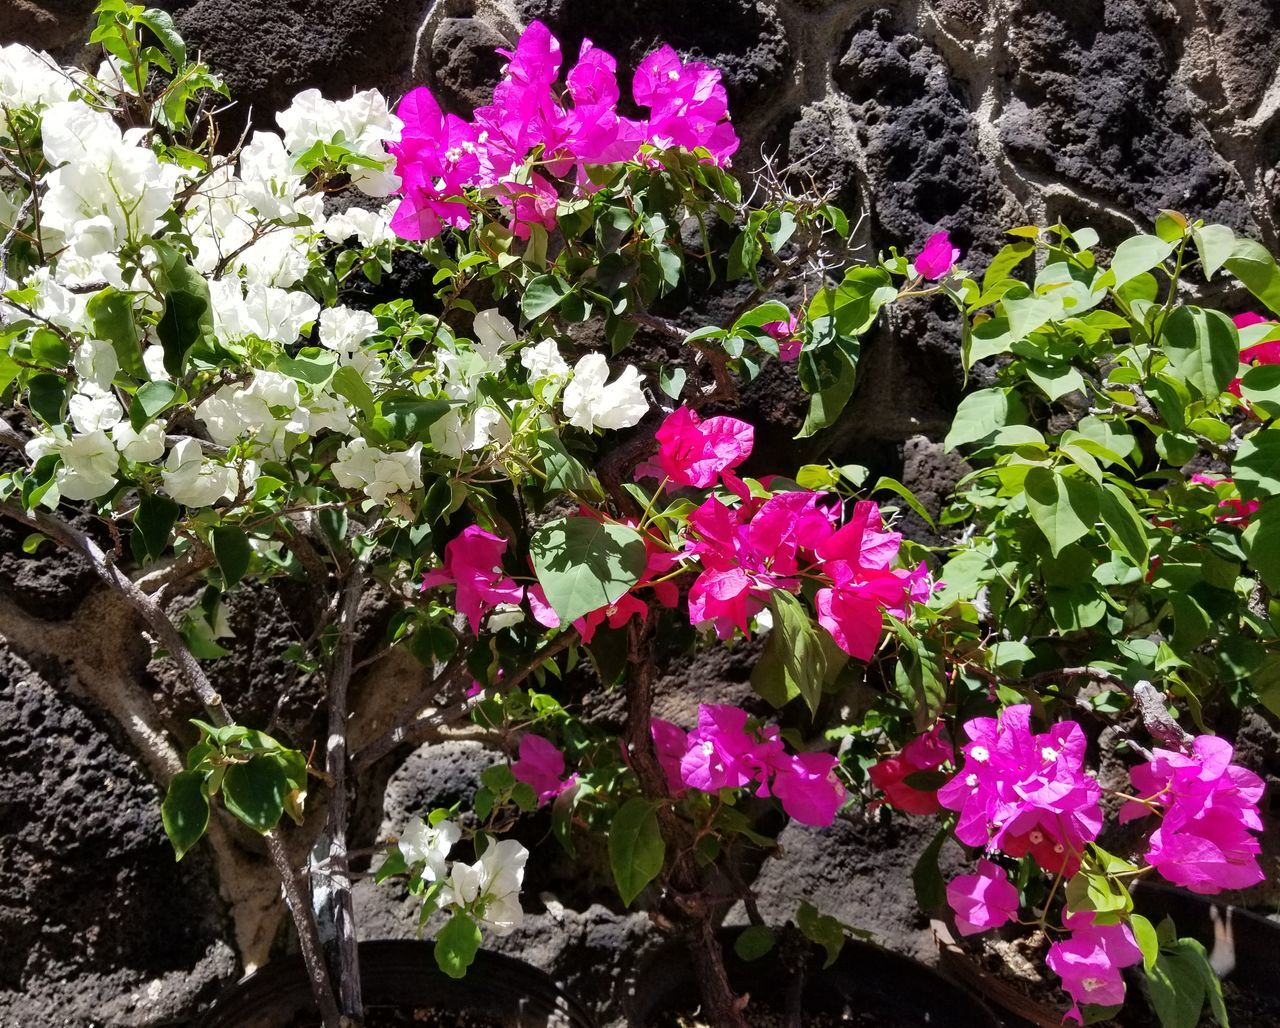 Flower Nature Growth Plant Beauty In Nature No People Fragility Outdoors Day Freshness Pink Color Flower Head Close-up Petunia Bougainvillea Flower Bougainvillea Multi Color Multi Colored